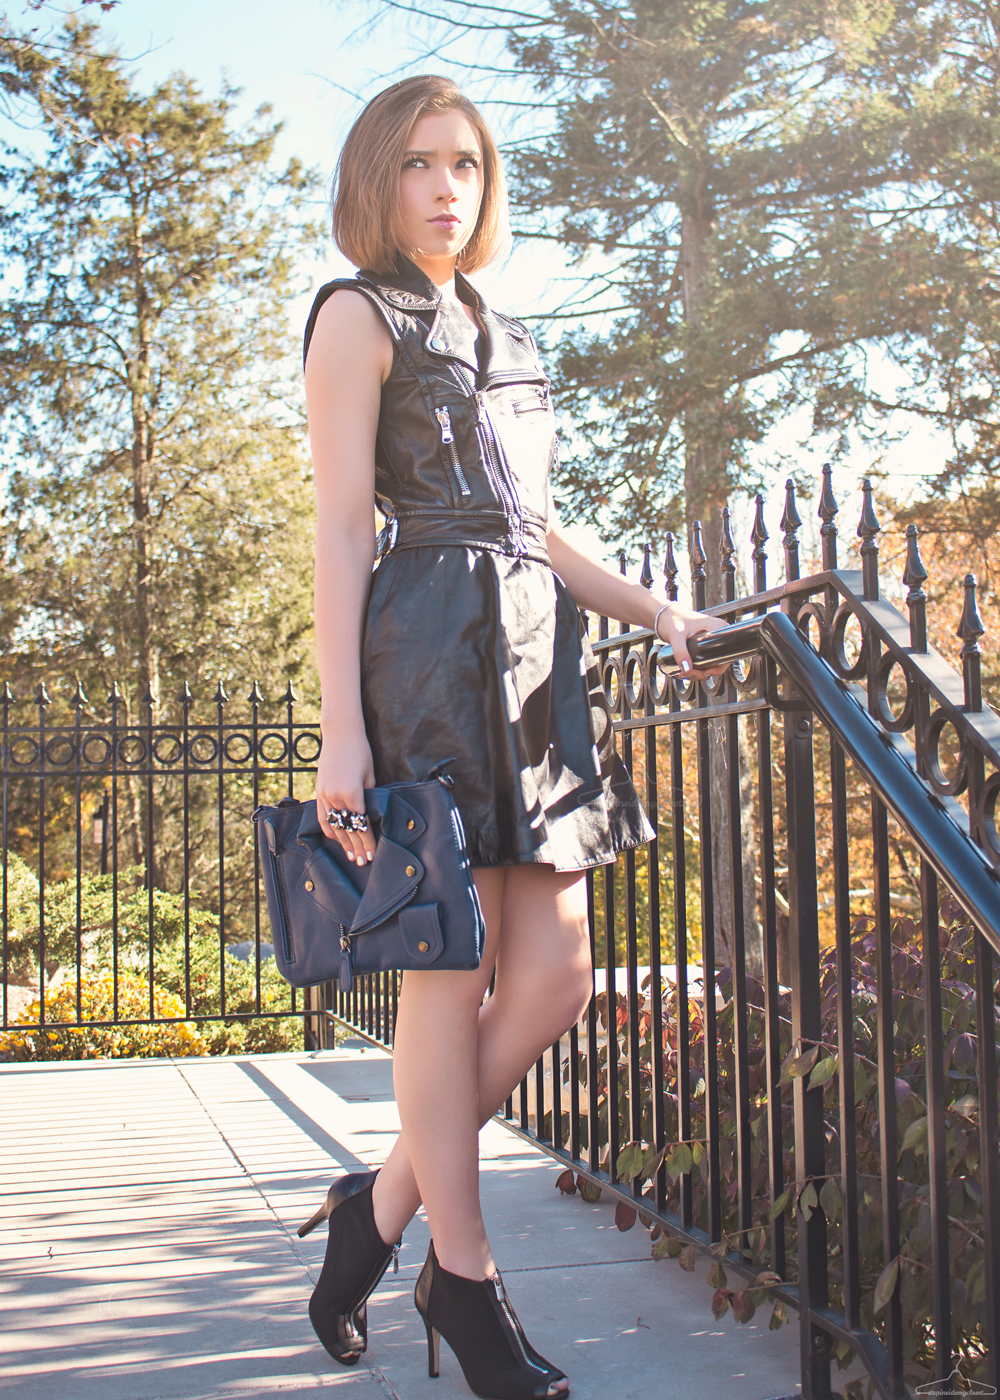 Step Inside My Closet - Black And Blue - Red Valentino, Adrienne Vittadini, The Shopping Bag, leather dress, biker jacket,